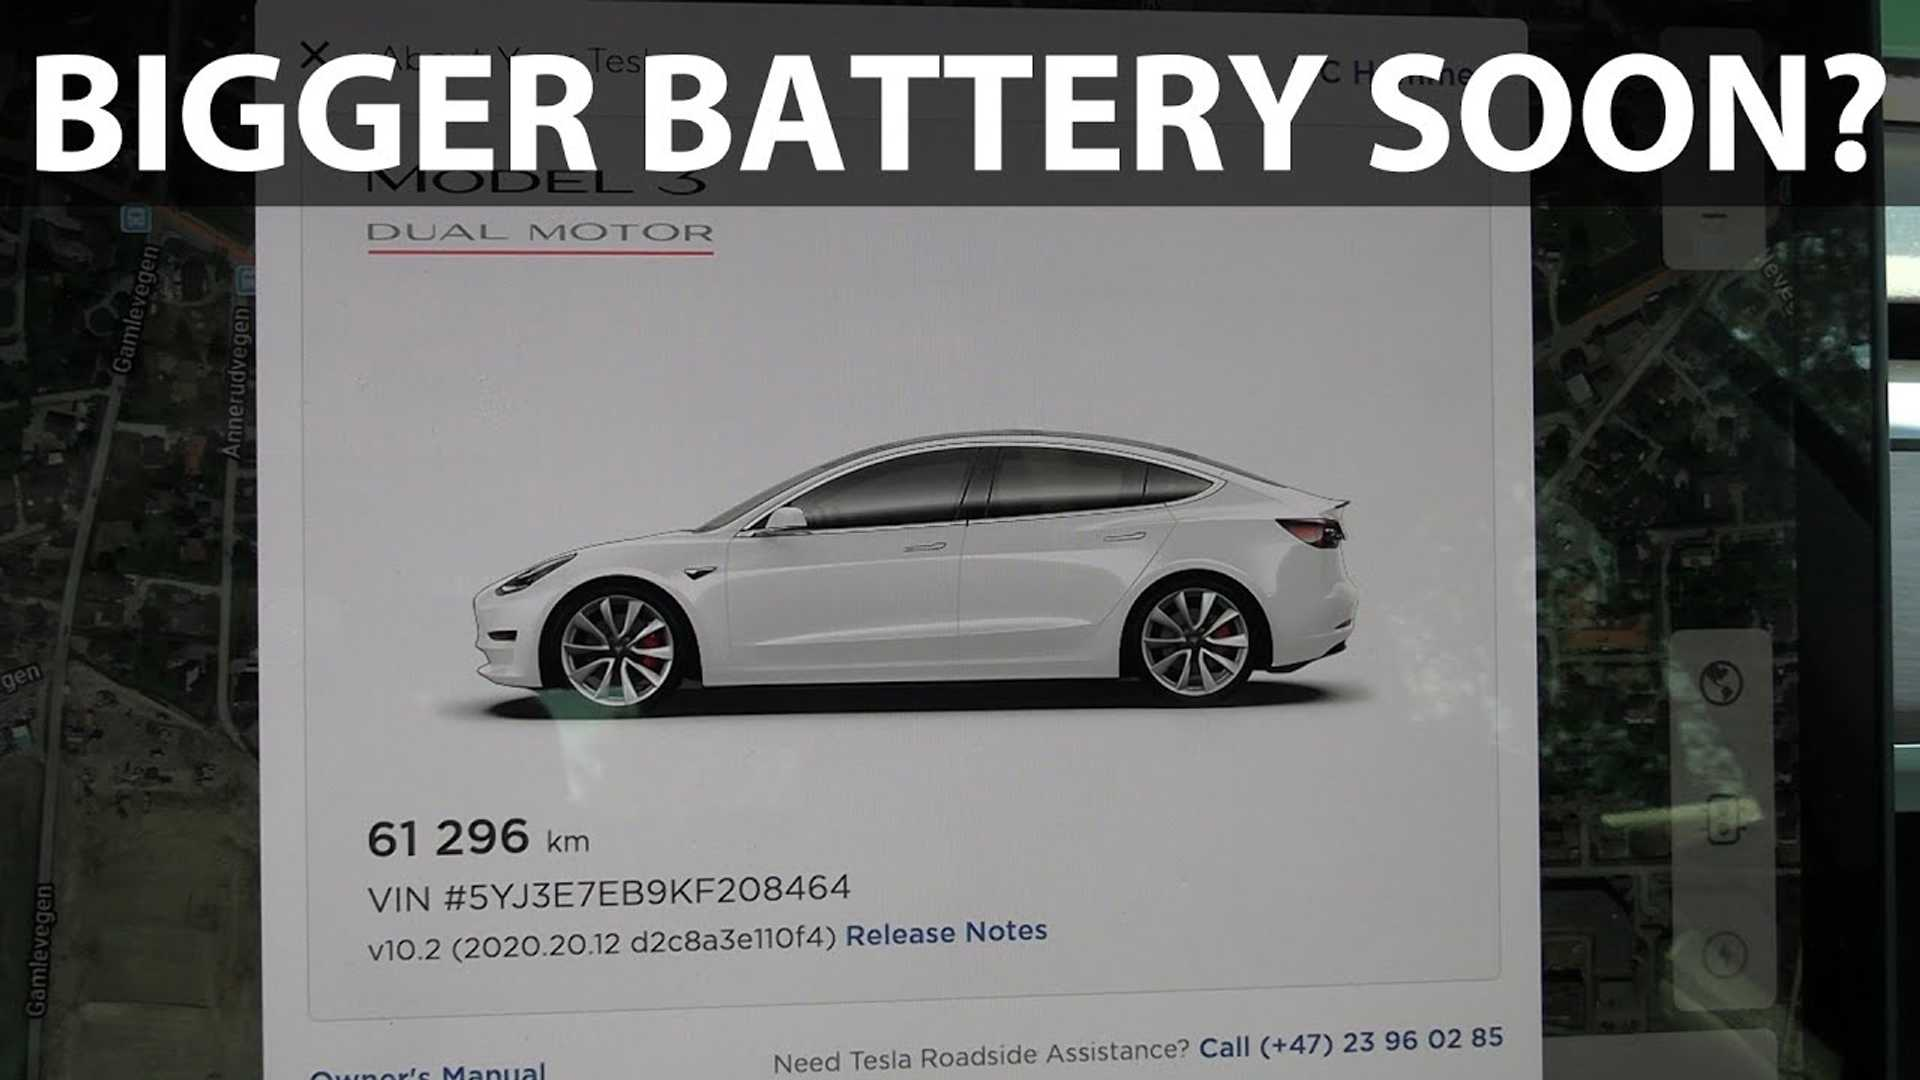 Tesla Reportedly Increases Max Battery Size To Hefty 205 kWh In Software